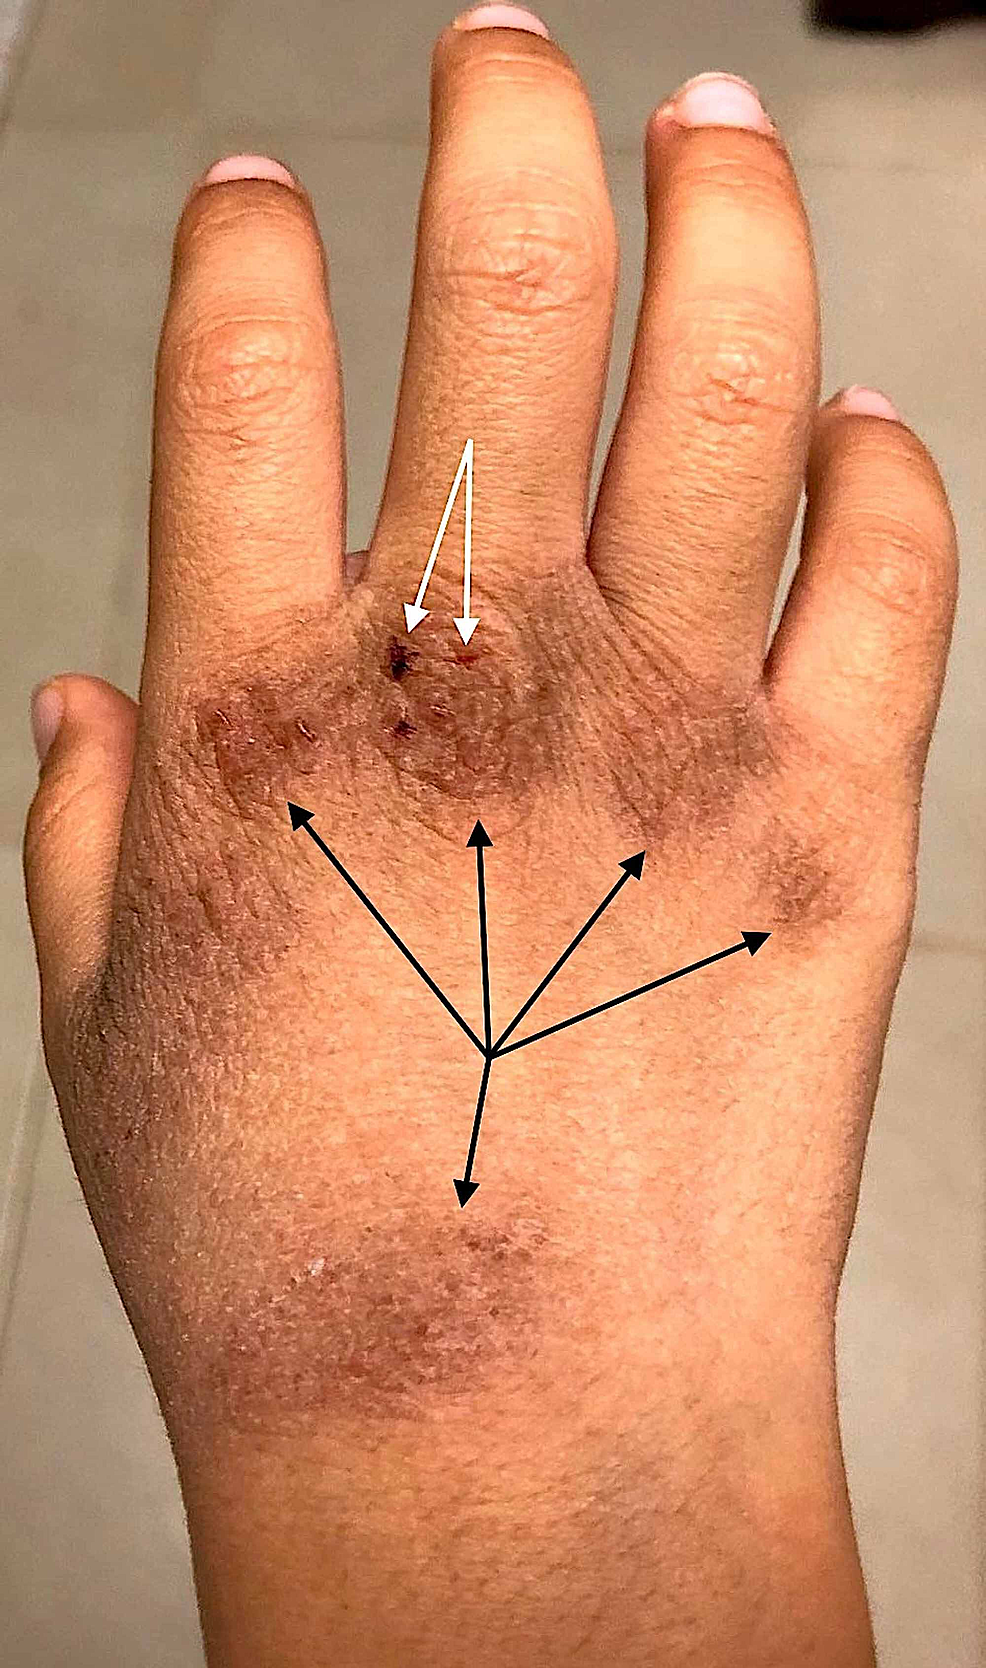 Eczematous-skin-changes-on-the-hand-of-a-19-year-old-Asian-male,-with-a-personal-history-of-atopic-dermatitis.